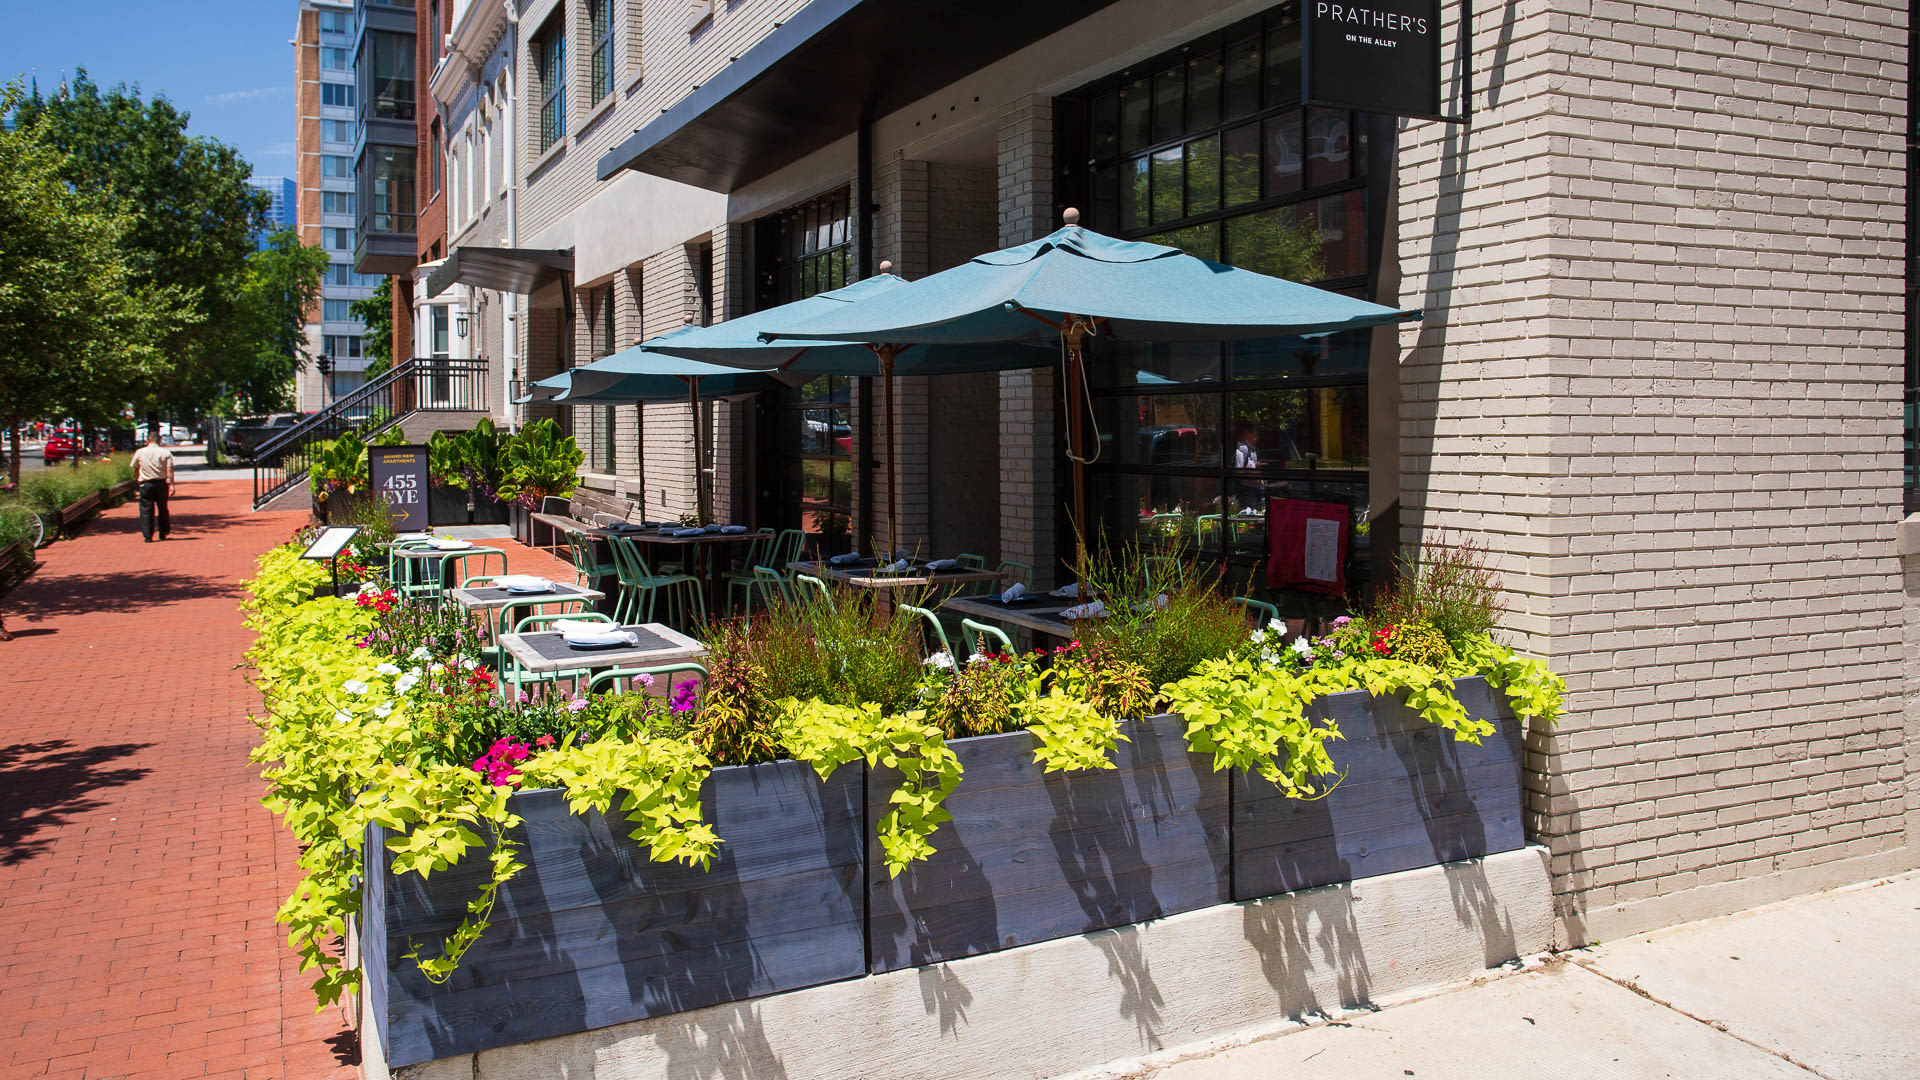 455 Eye Apartments - Prathers on the Alley Restaurant located On-site